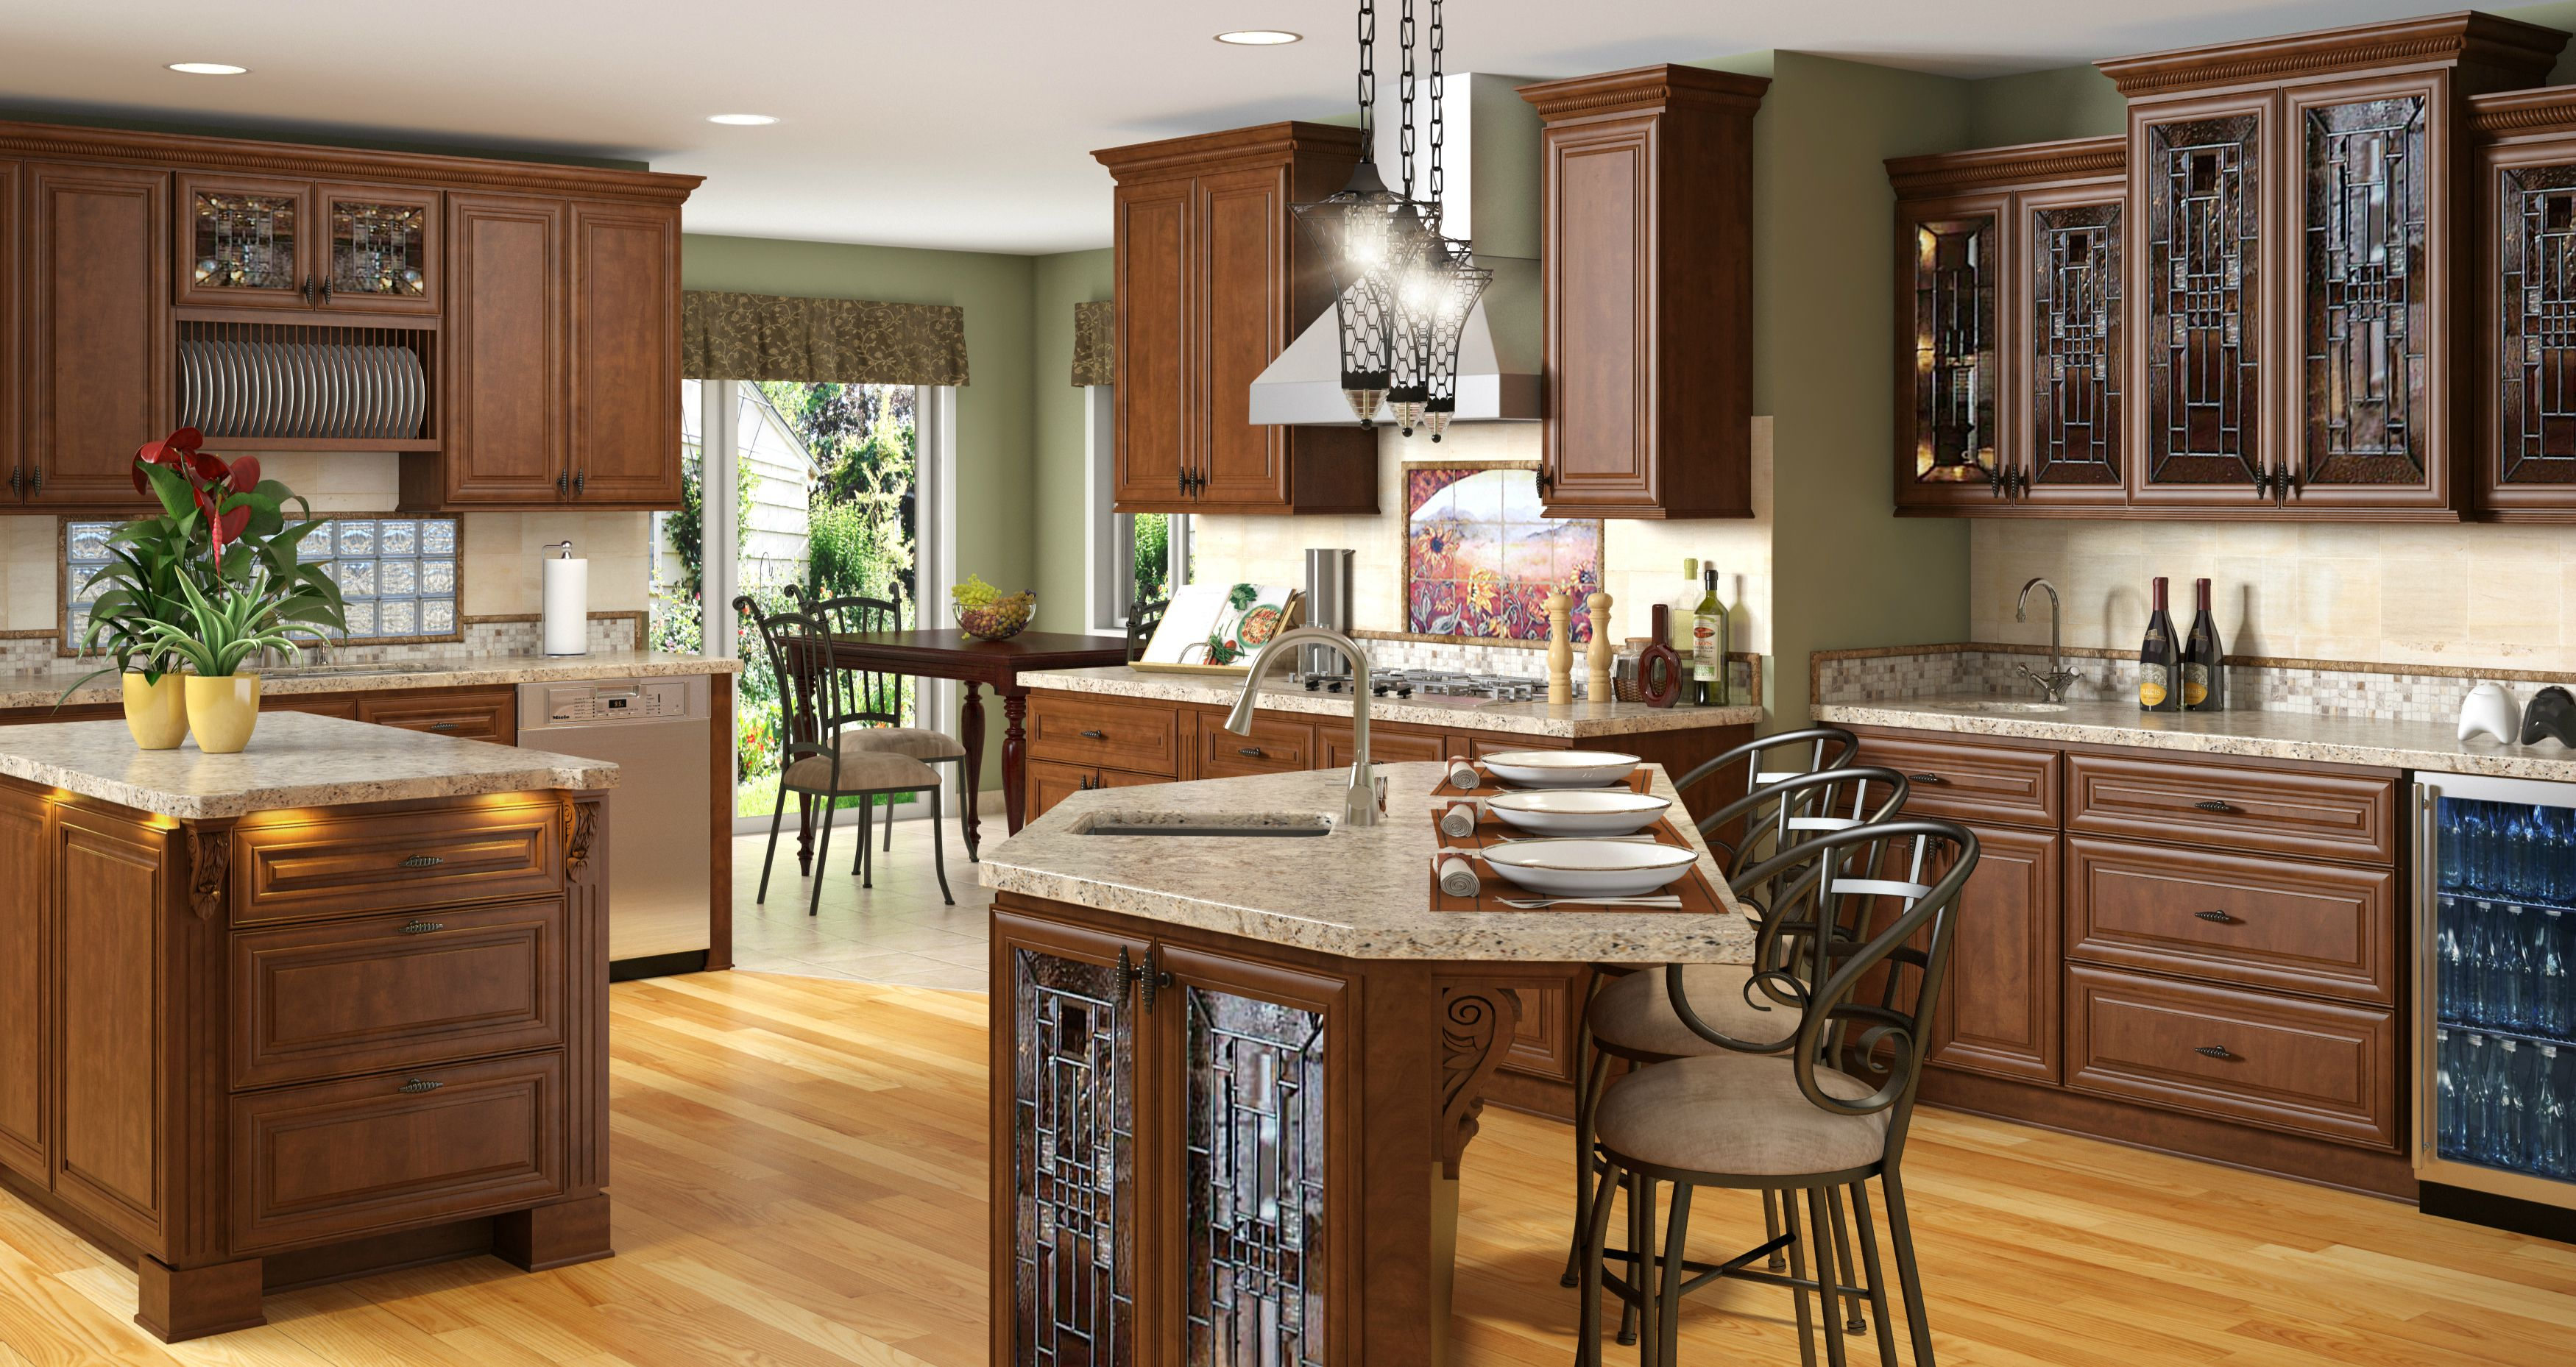 Assembled Kitchen Cabinets Bathroom Vanity Buycabientdirect Home Page Buy Affordable Kitchen Cabinets Wholesale Kitchen Cabinets Kitchen Cabinet Door Styles